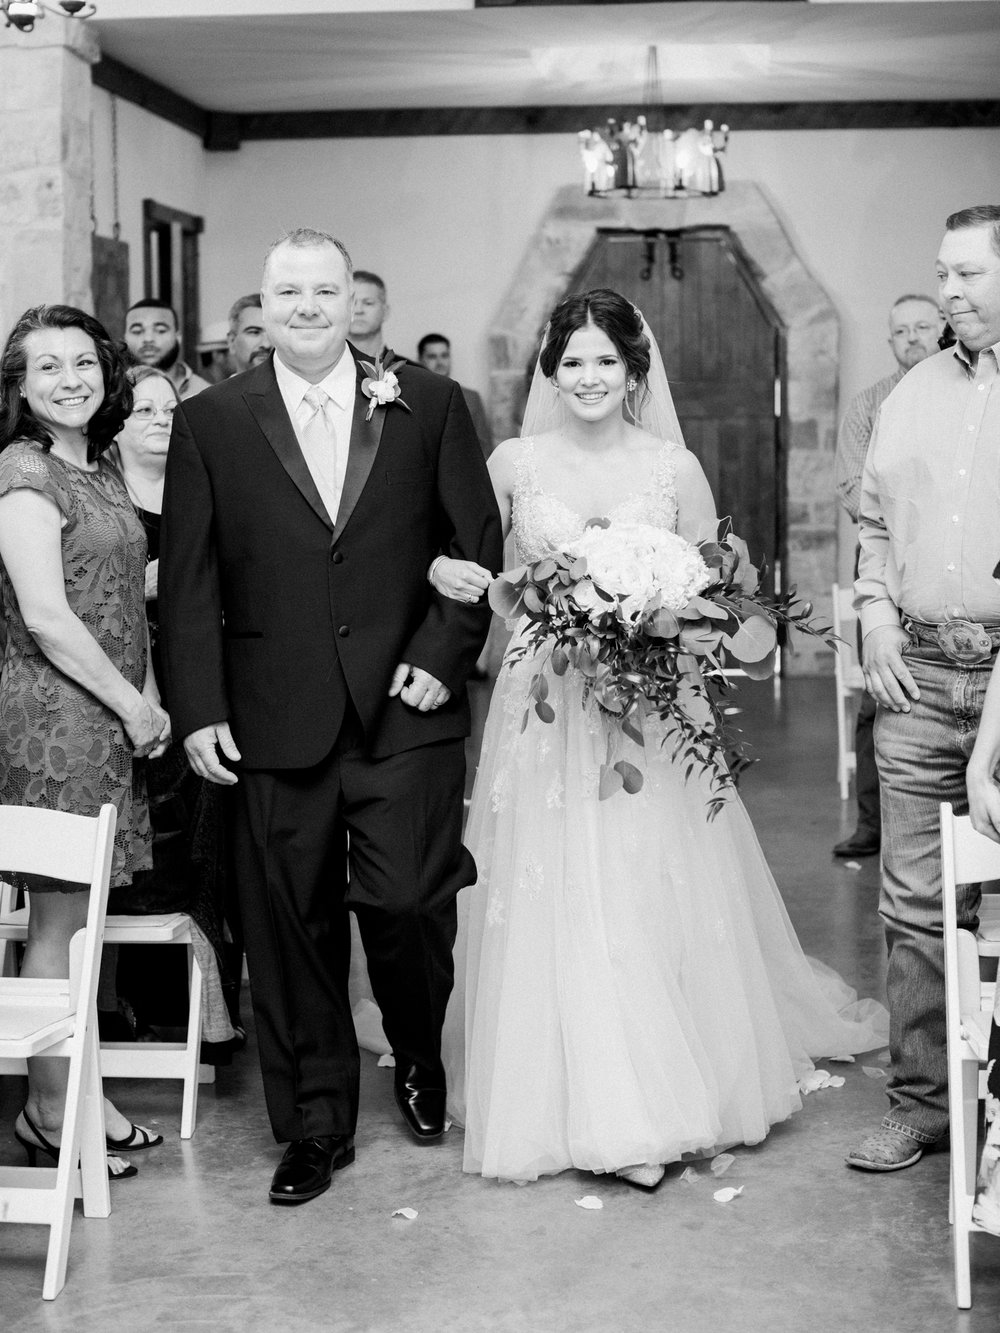 Elegant Spring Vineyard Wedding | Film Wedding Photographer | Austin Wedding Photographer | Father Walking Bride Down Aisle | Britni Dean Photography // britnidean.com